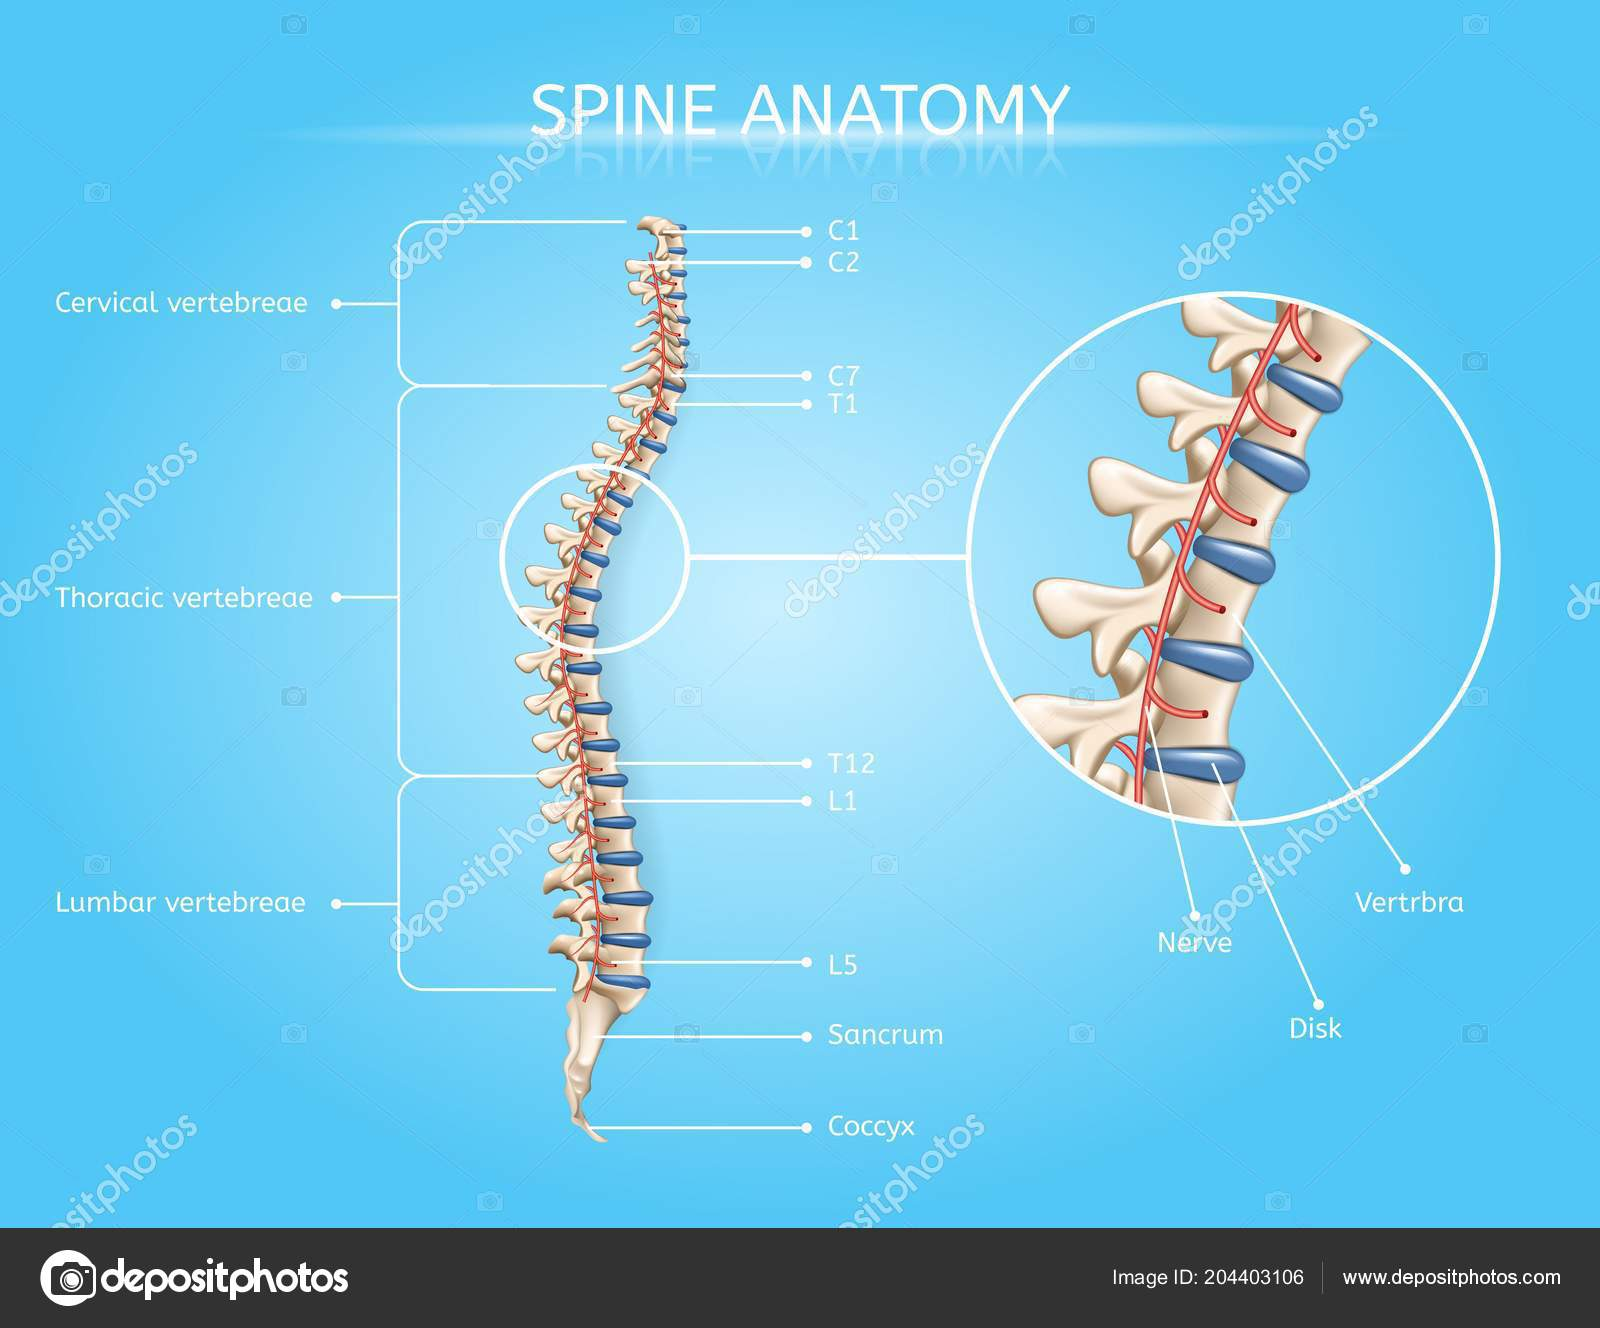 hight resolution of spine anatomy vector medical scheme with vertebral column regions lateral view realistic illustration human body internal structures